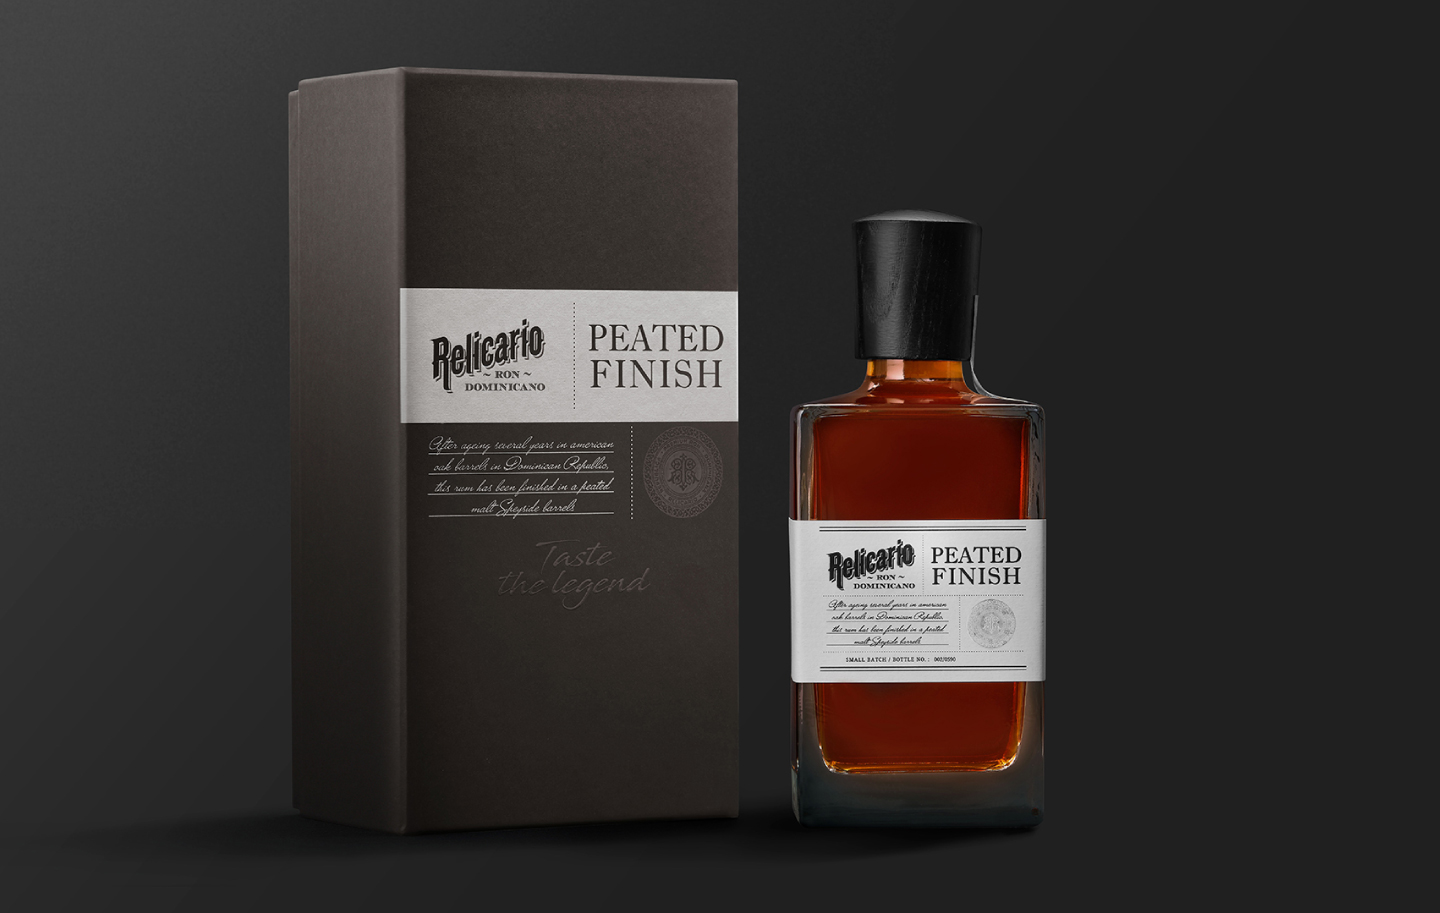 Packaging Design for Relicario Peated Finish a Superior Rum